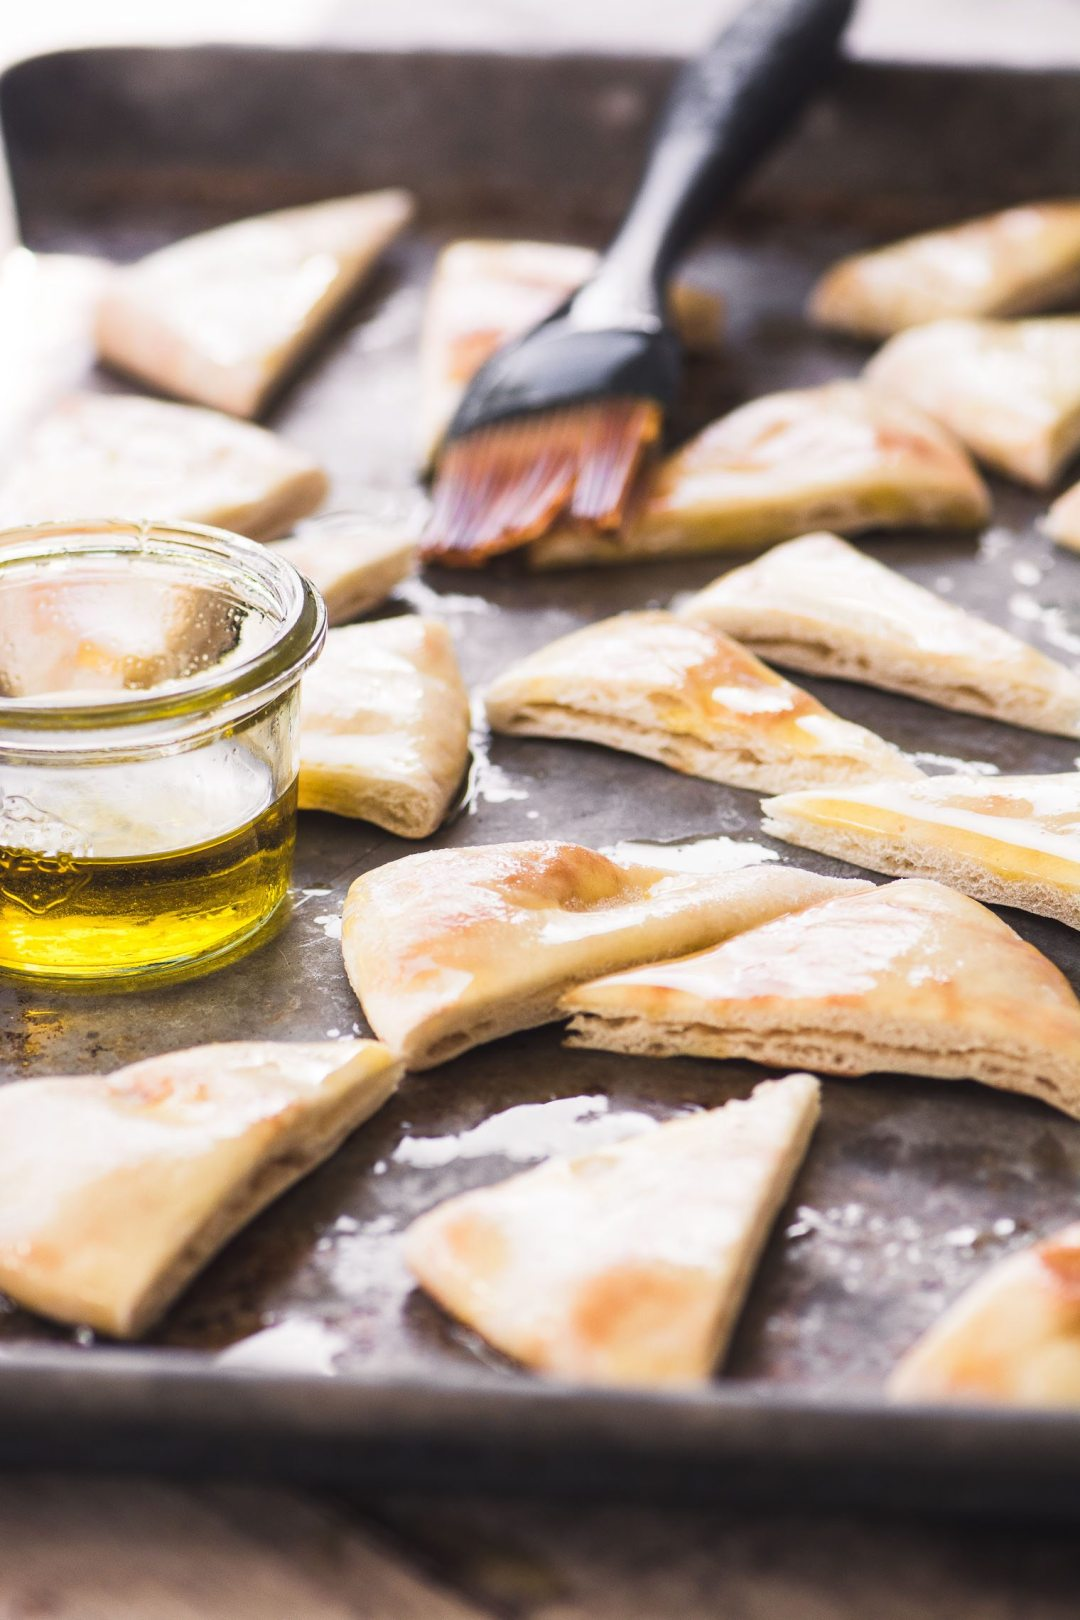 Brushing homemade pita chips with olive oil